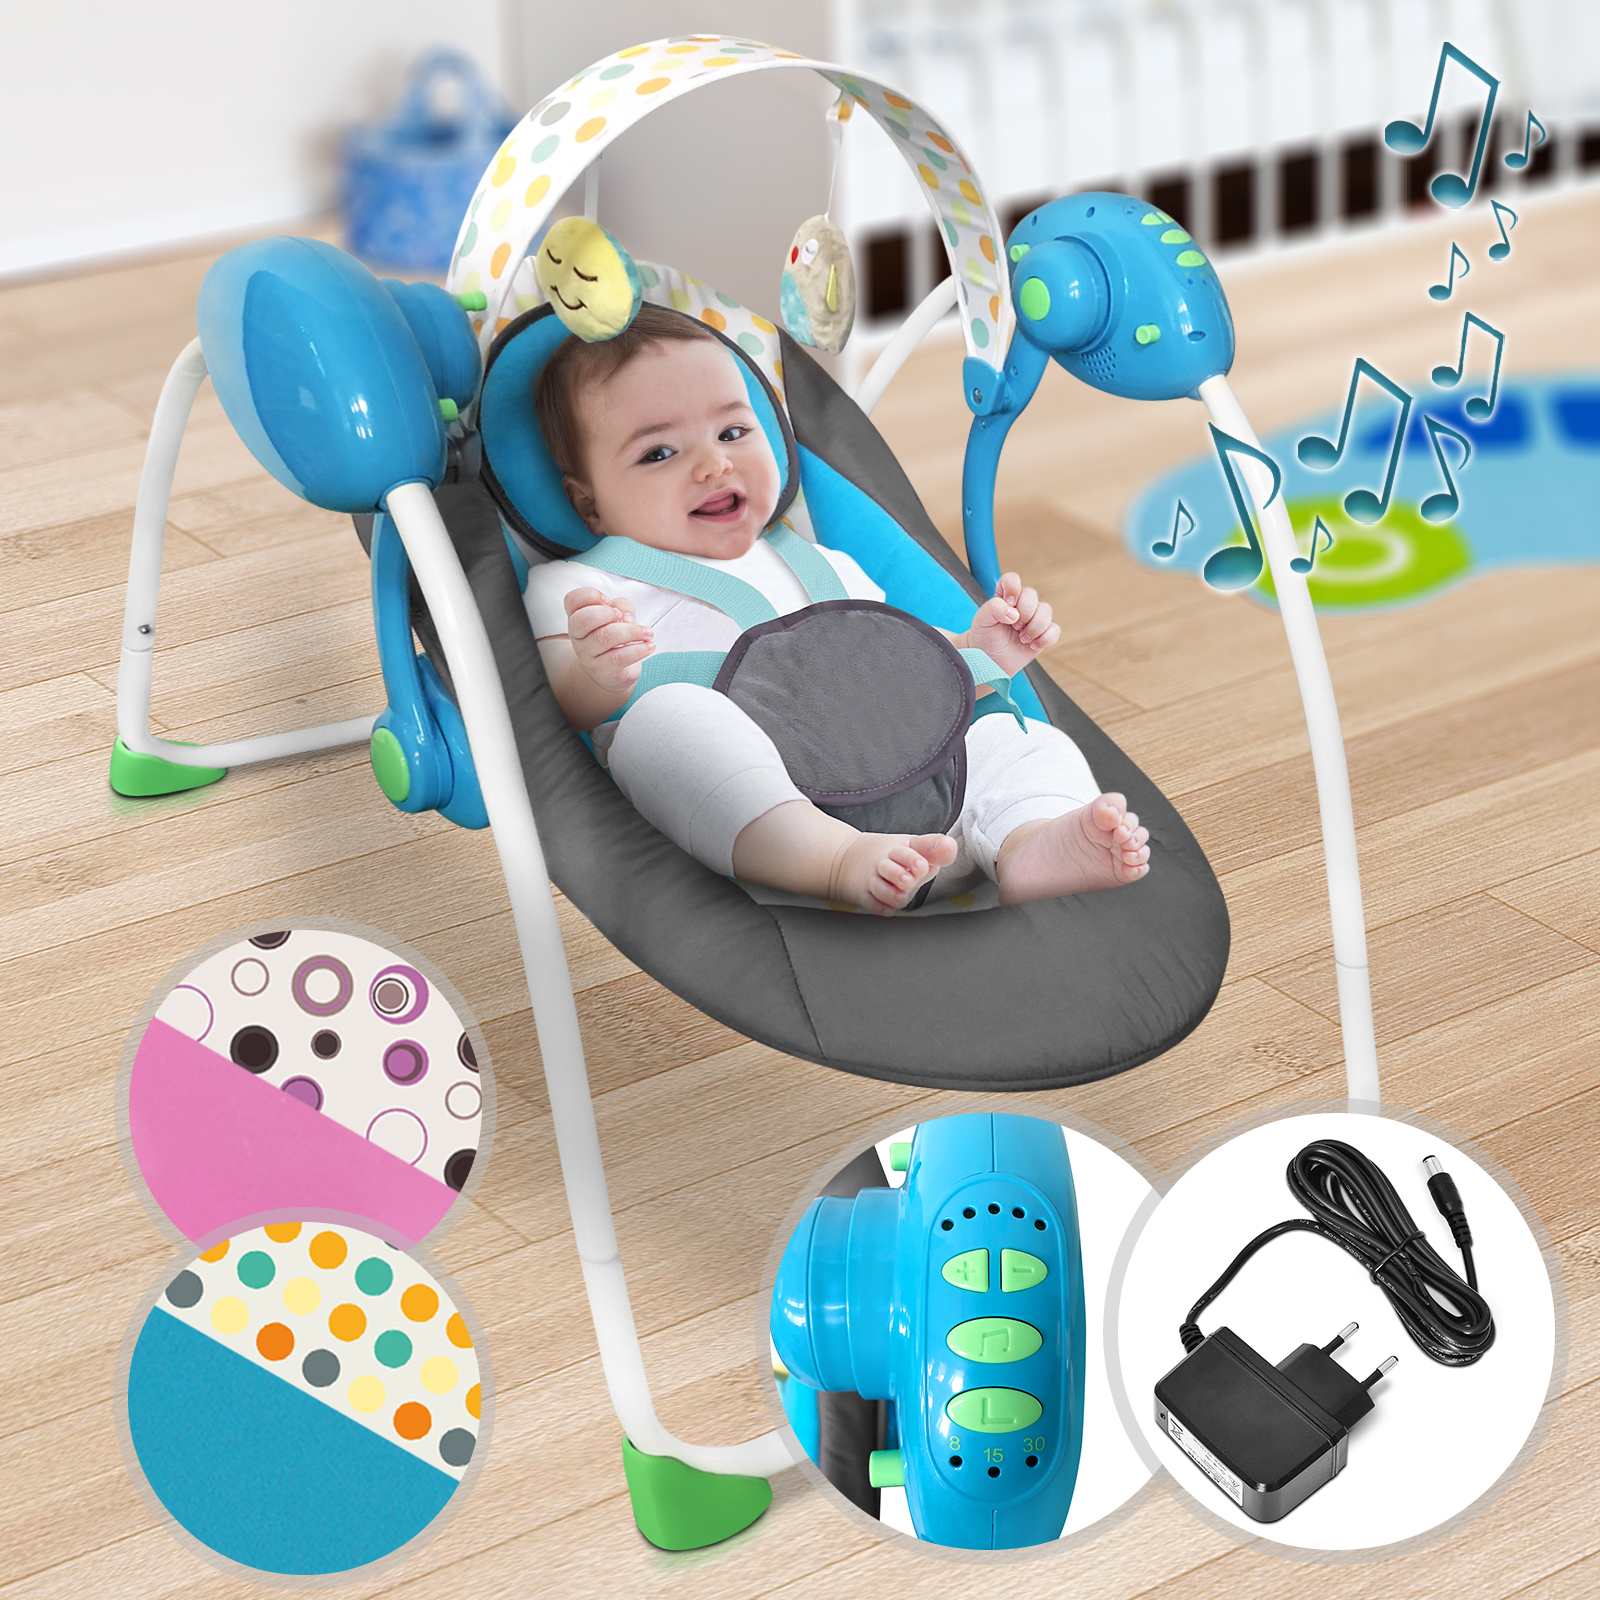 Baby-Bouncer-Music-MP3-Swing-Rocking-Chair-Infant-Entertainment-Toys-U12-Months thumbnail 12